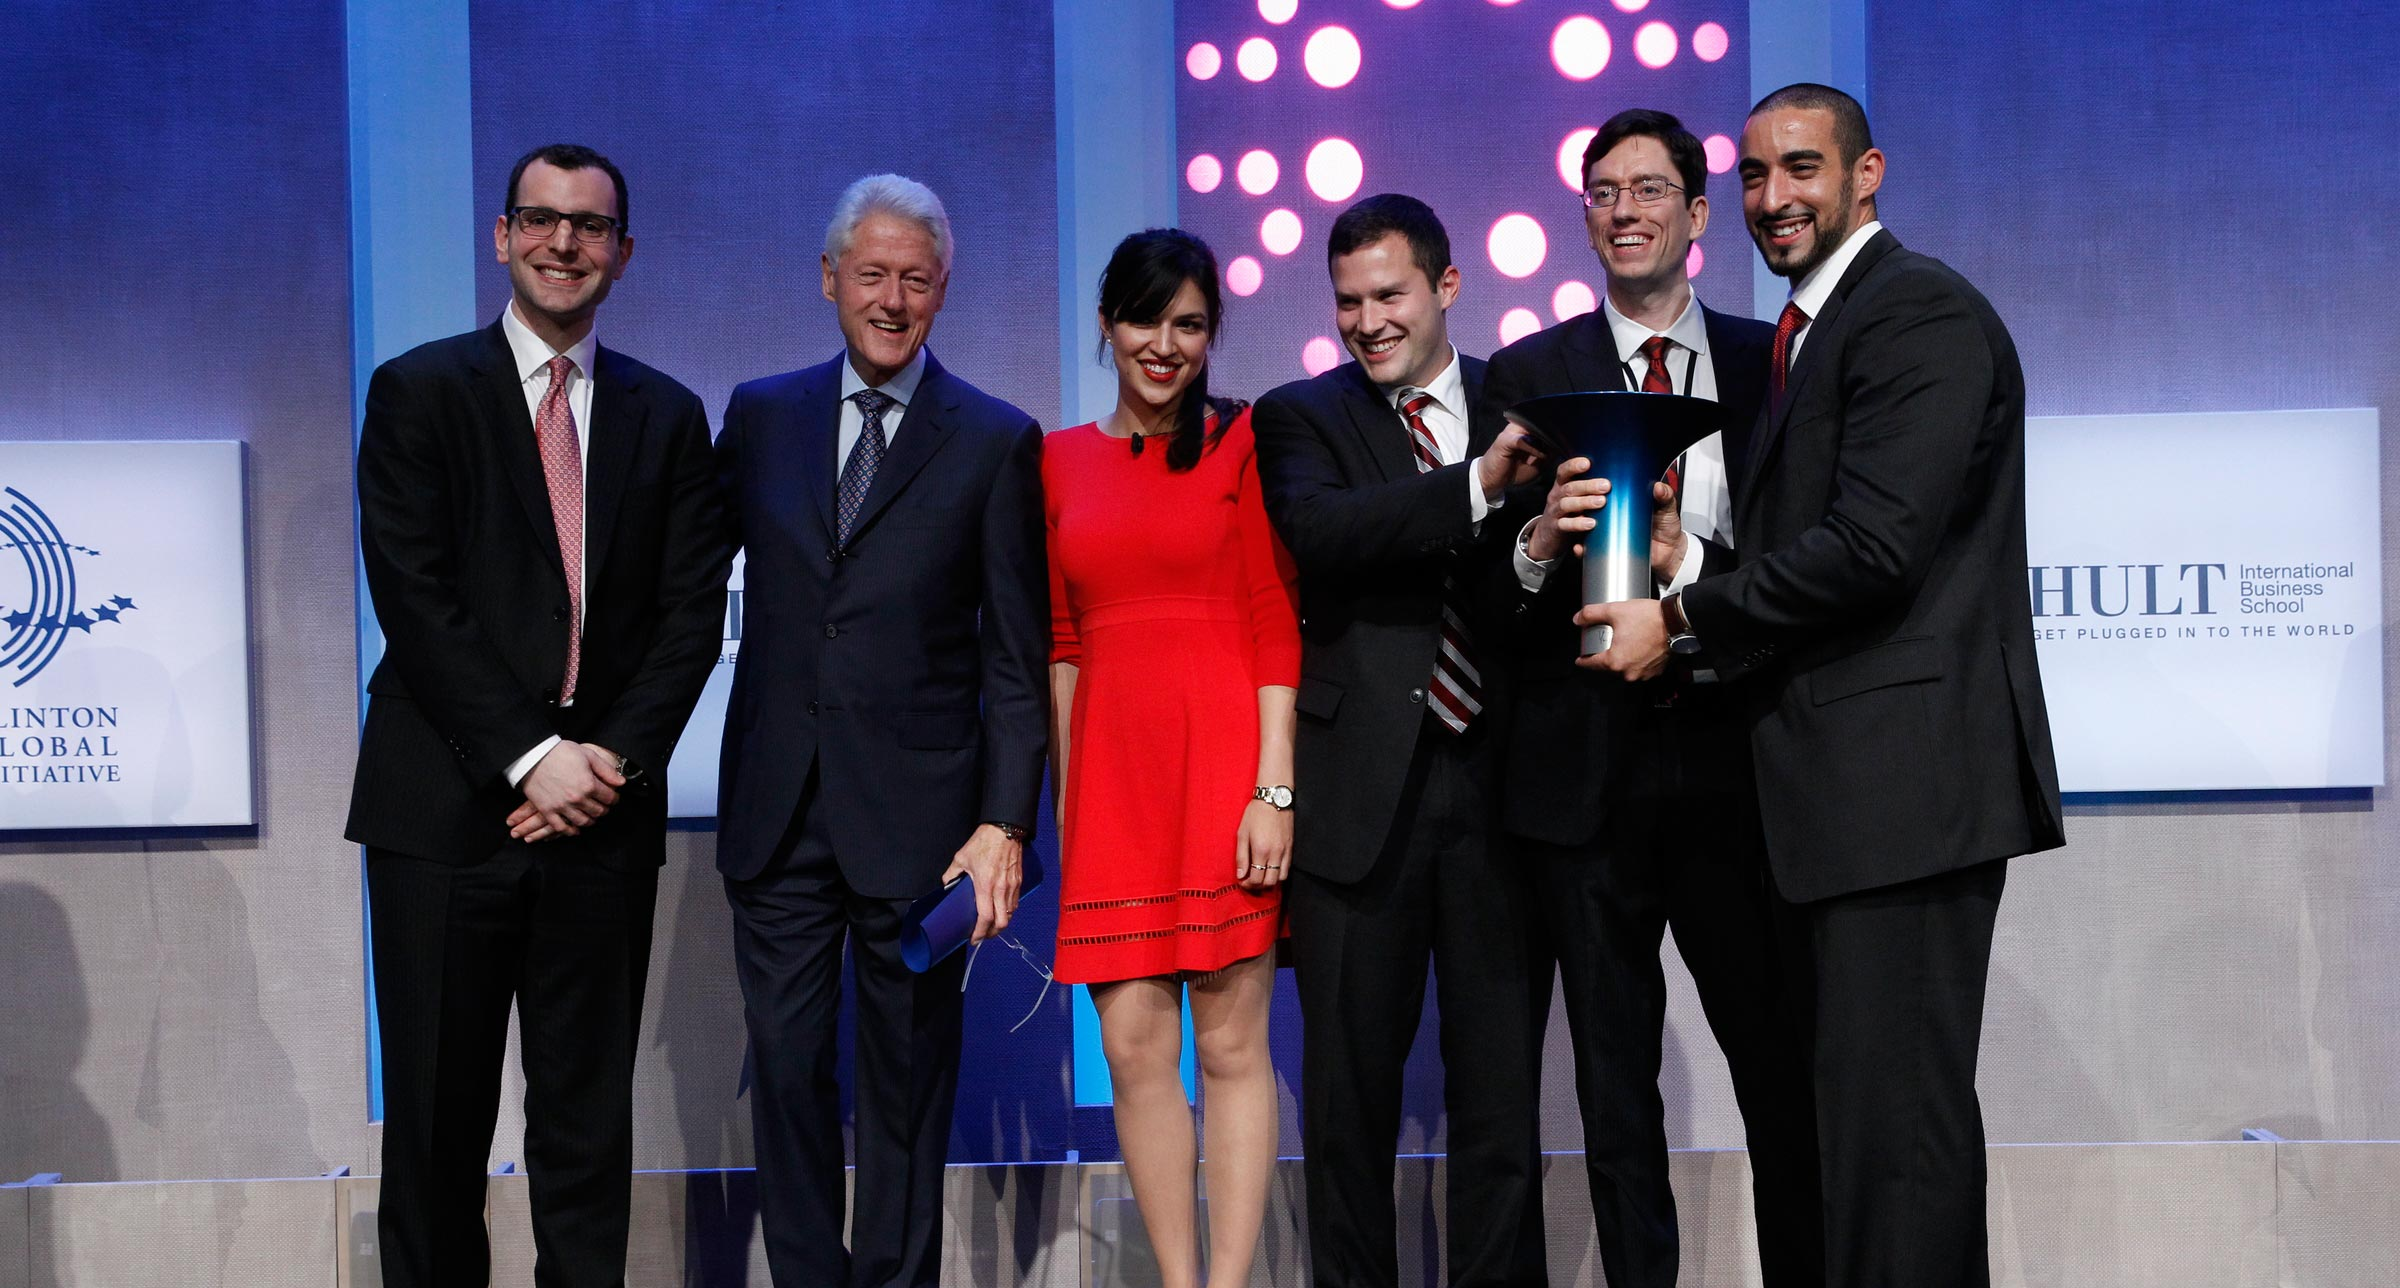 The winners of the 2014 Hult Prize Challenge